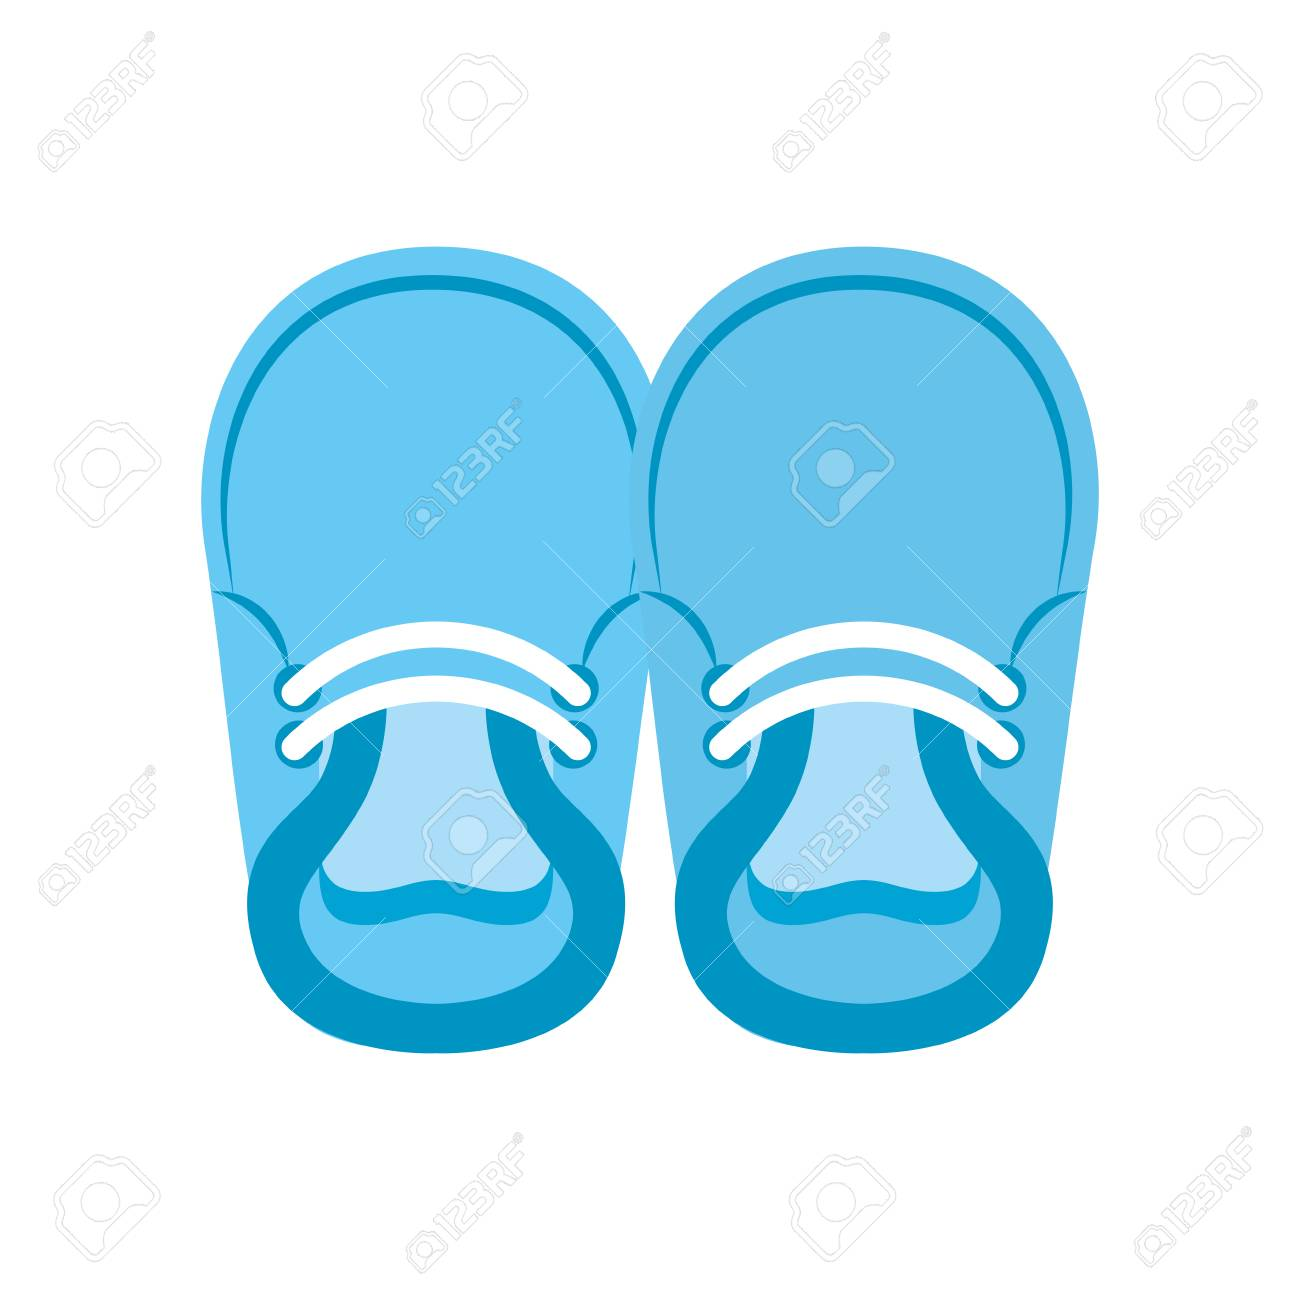 Baby Booties For Boy Child Cute Image Vector Illustration Royalty Free Cliparts Vectors And Stock Illustration Image 85457689